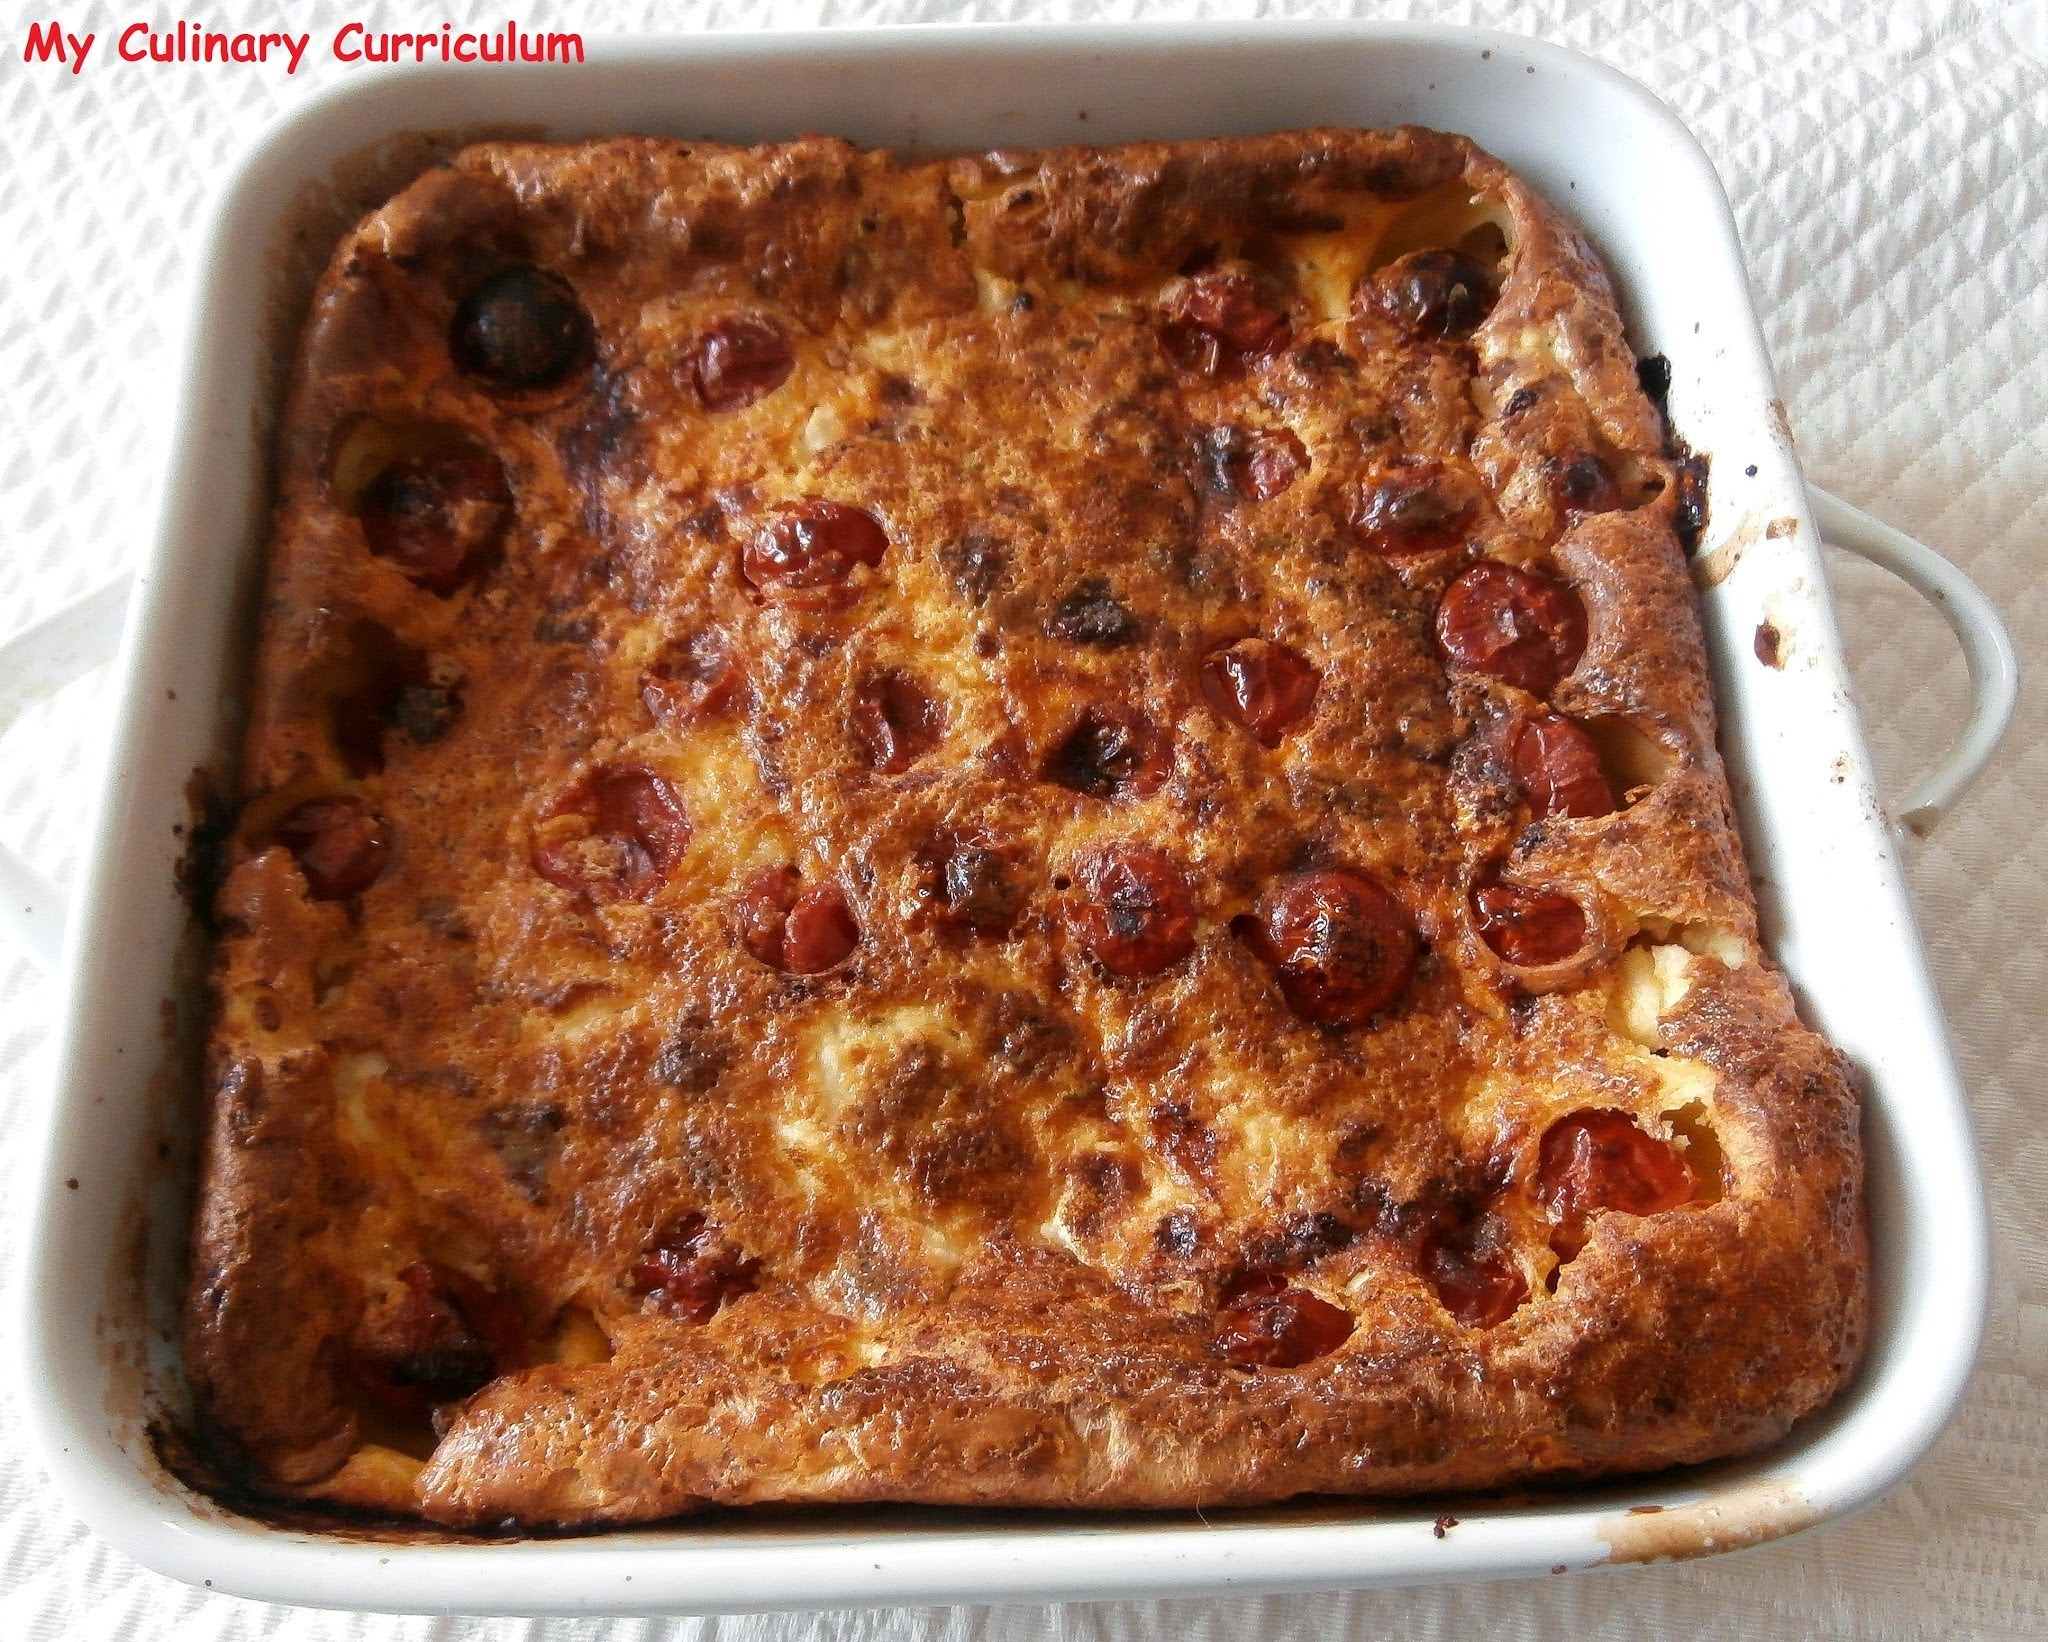 Clafoutis aux tomates cerises et chèvre frais (Clafoutis with cherry tomatoes and goat cheese)